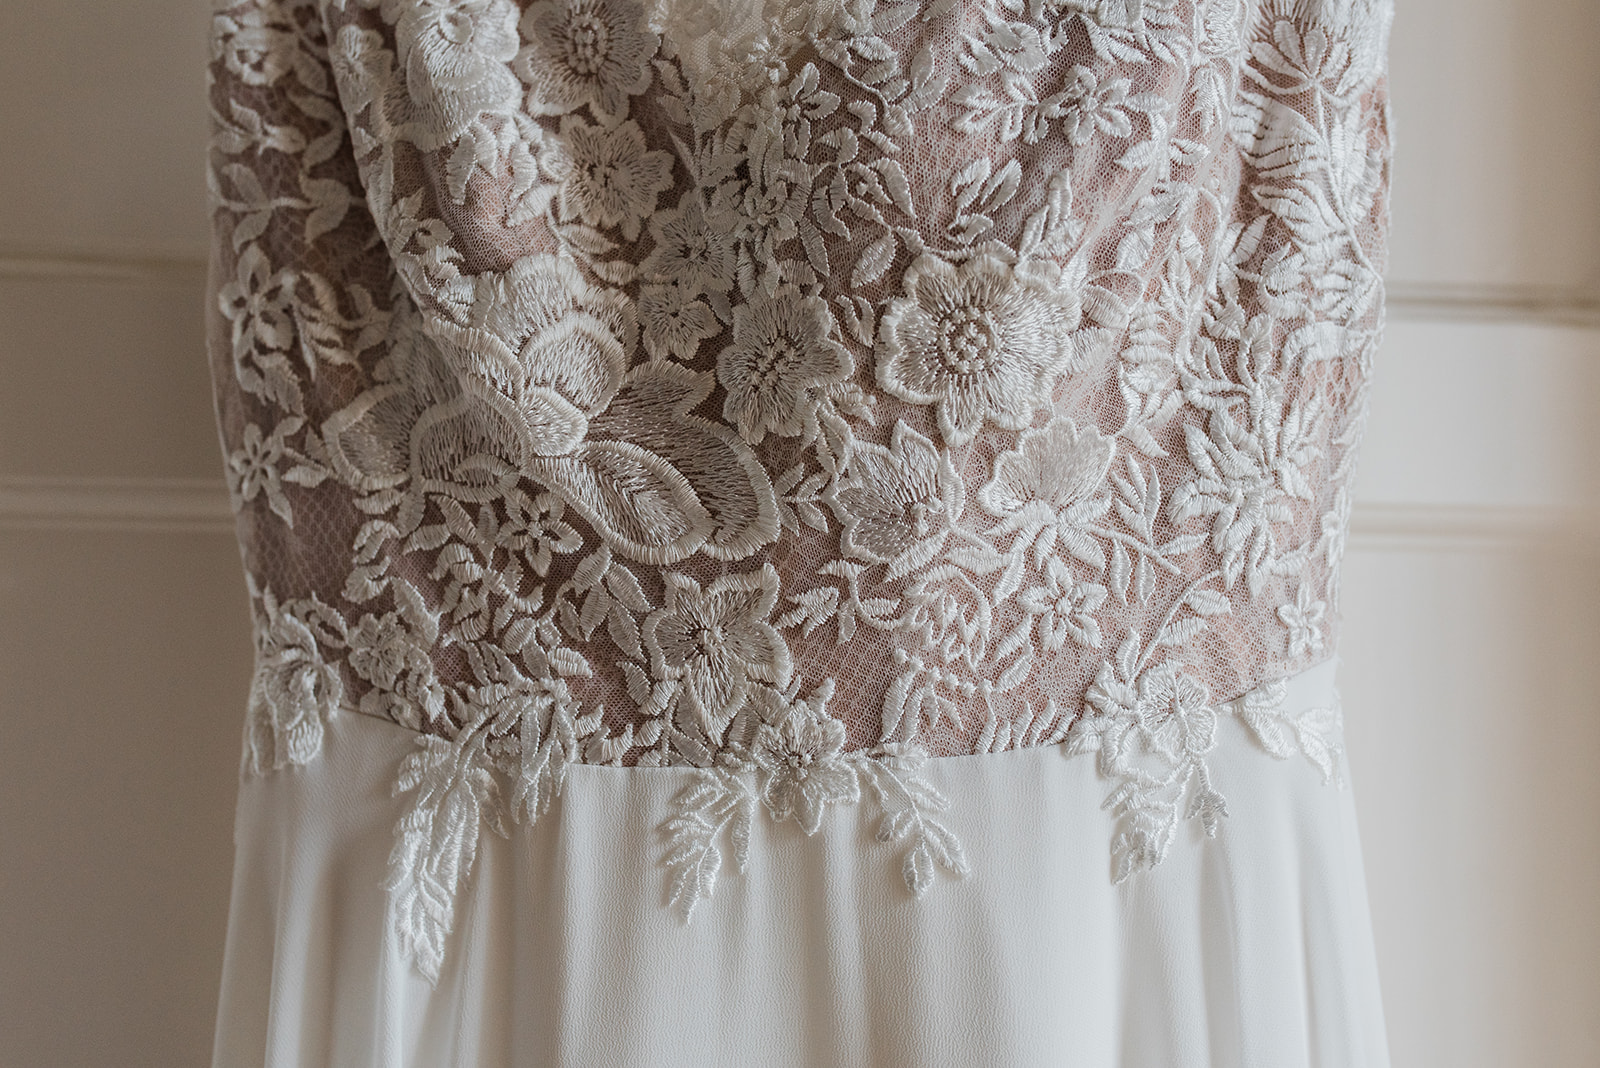 Wedding dress bodice detail